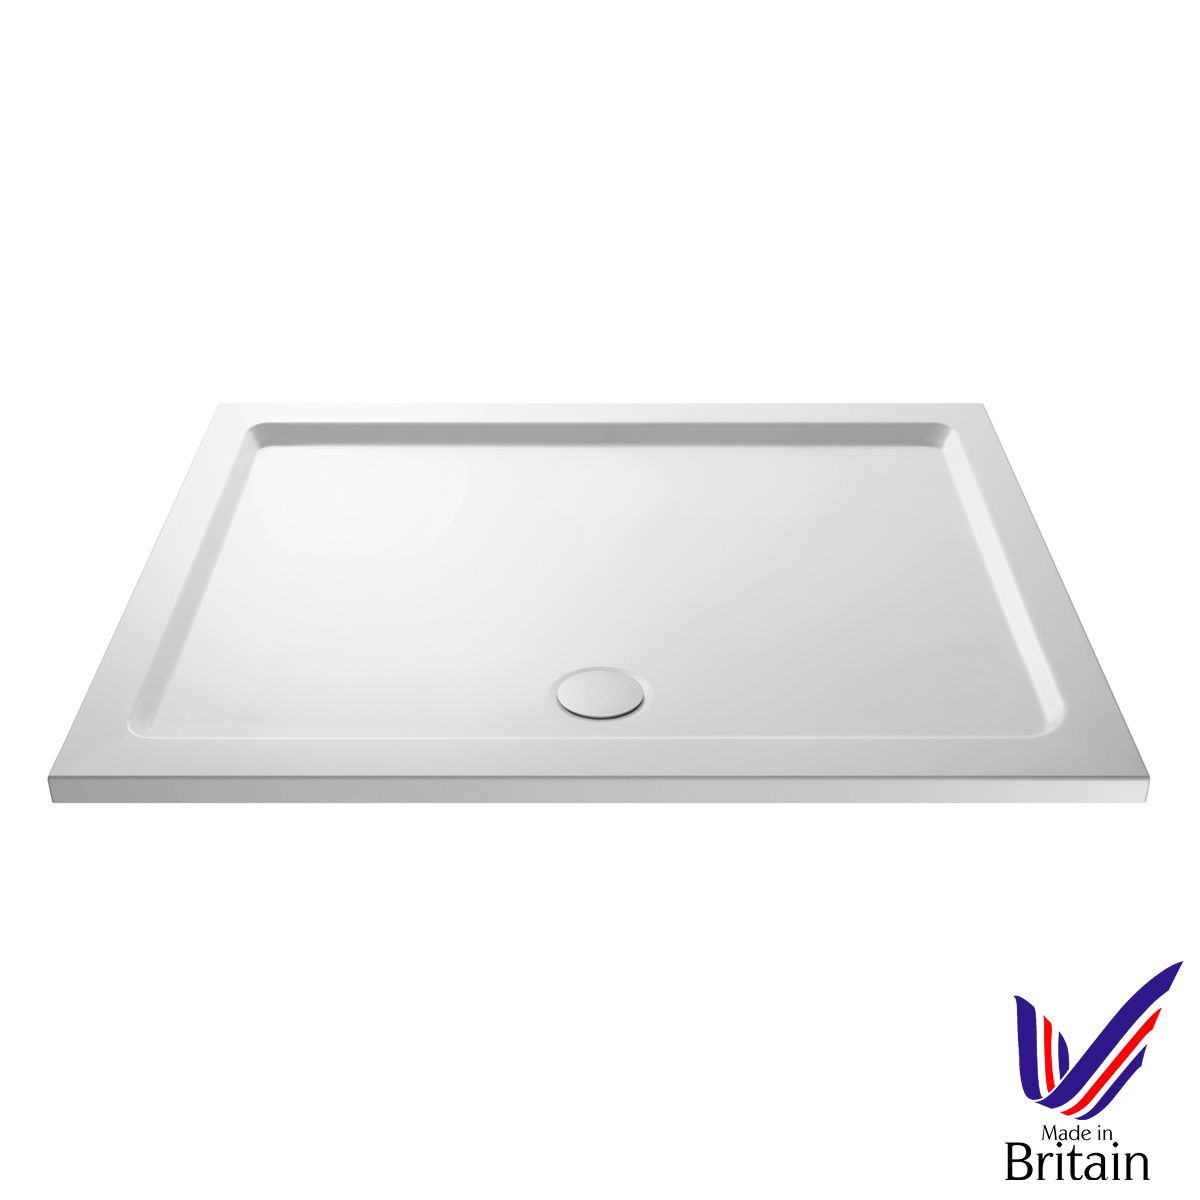 1400 x 900 Shower Tray Rectangular Low Profile by Pearlstone